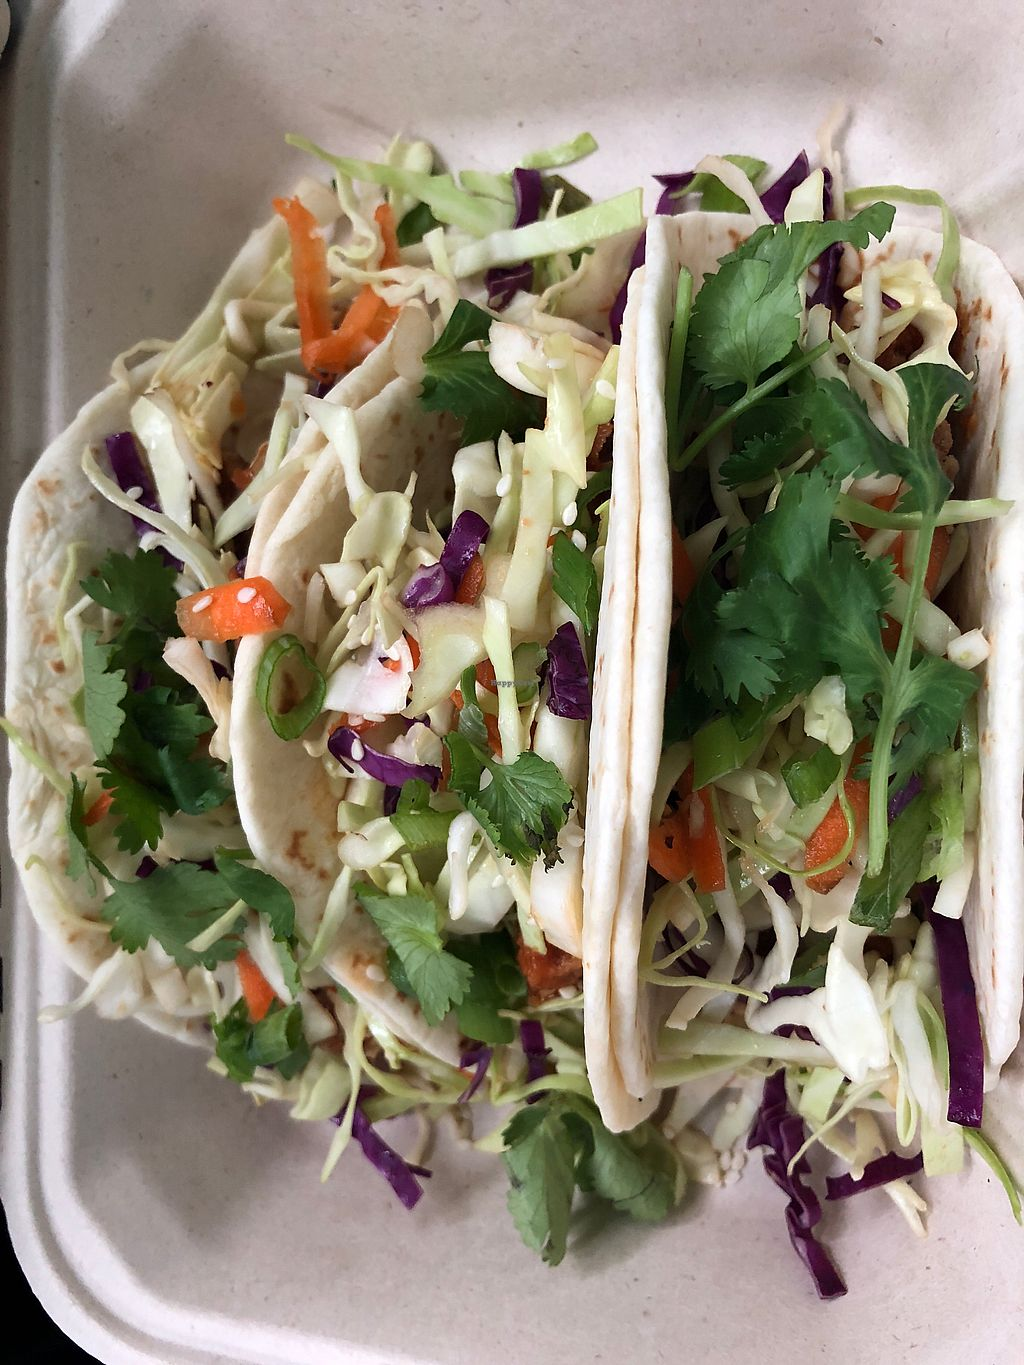 """Photo of The Great Y'all - Food Truck  by <a href=""""/members/profile/GyaniCabreraM"""">GyaniCabreraM</a> <br/>Tacos <br/> April 8, 2018  - <a href='/contact/abuse/image/89363/382596'>Report</a>"""